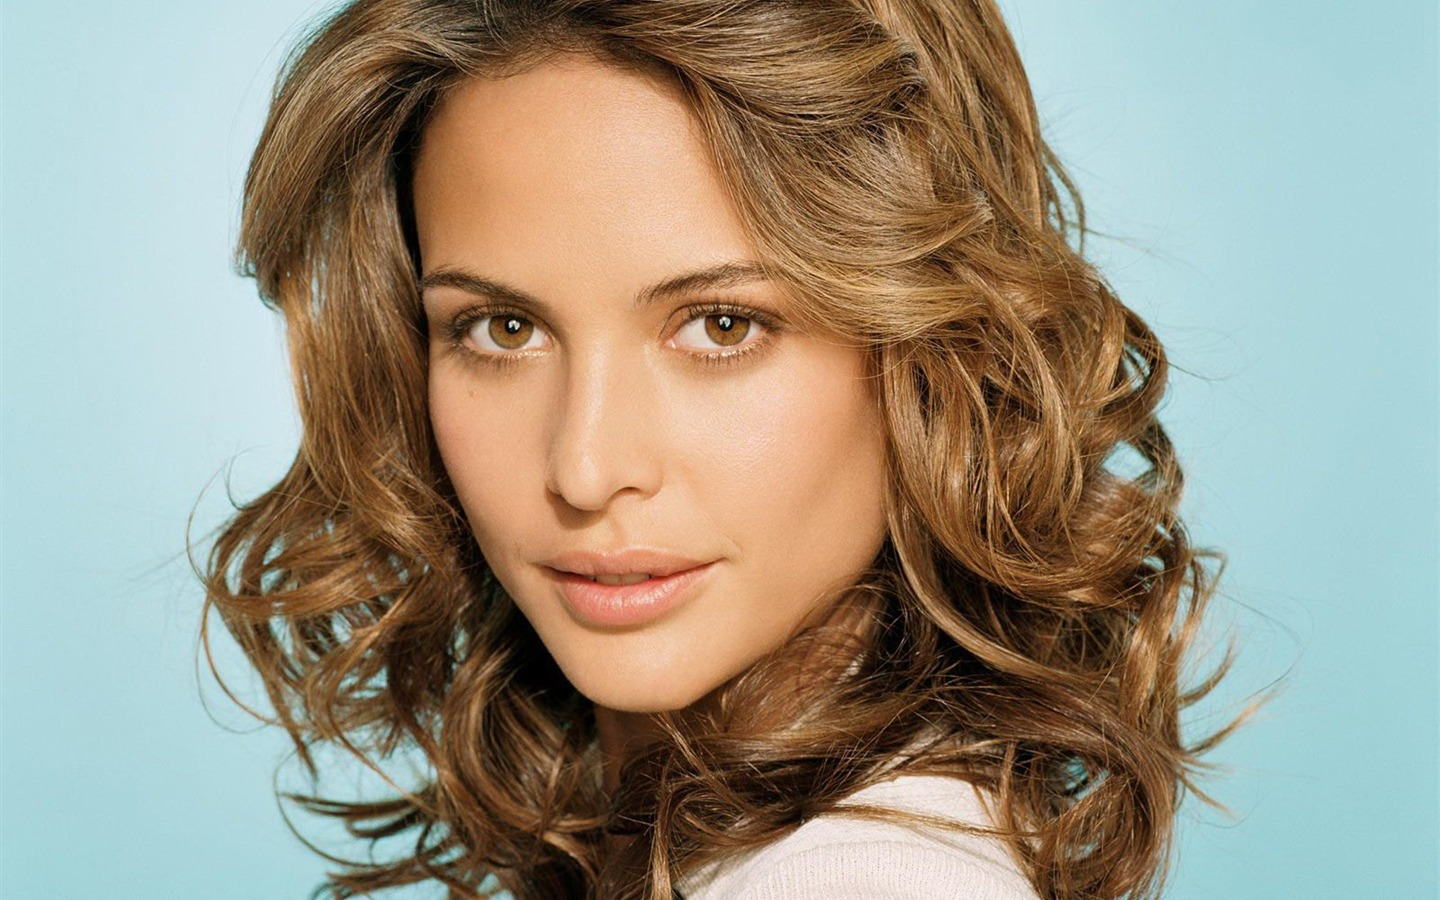 Josie Maran #001 - 1440x900 Wallpapers Pictures Photos Images